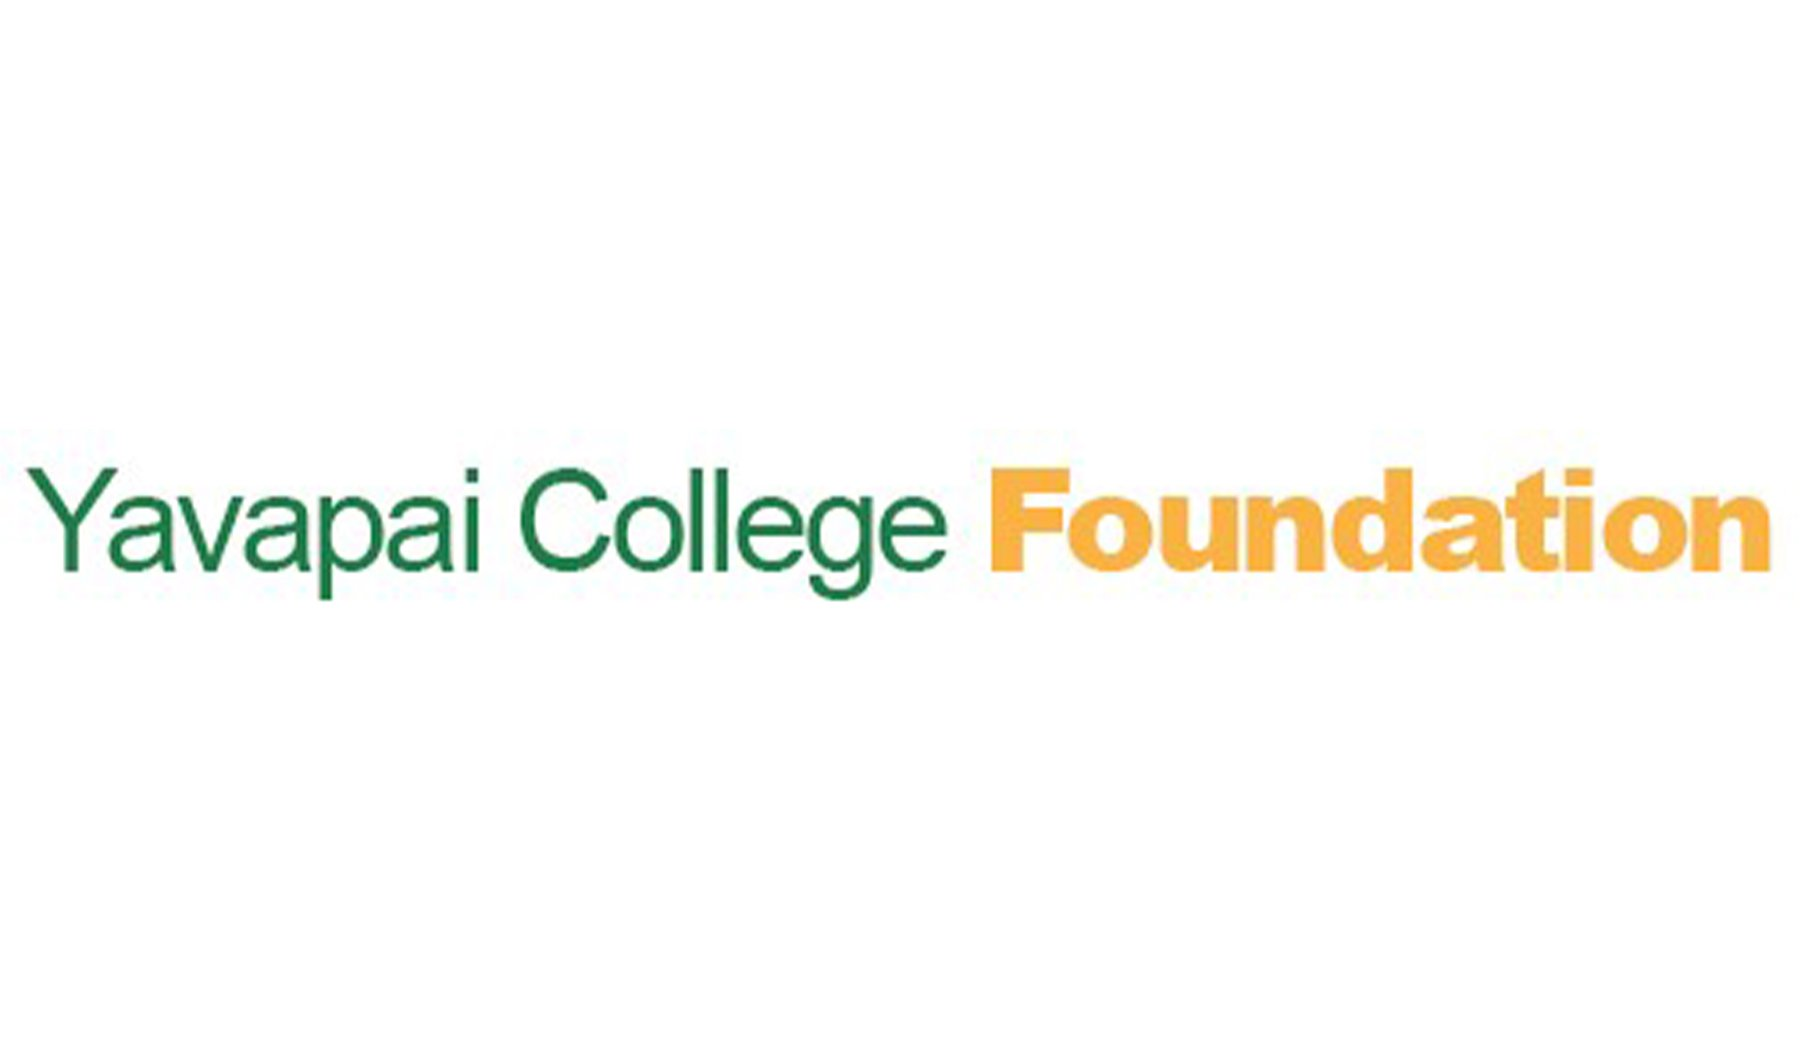 Yavapai college foundation